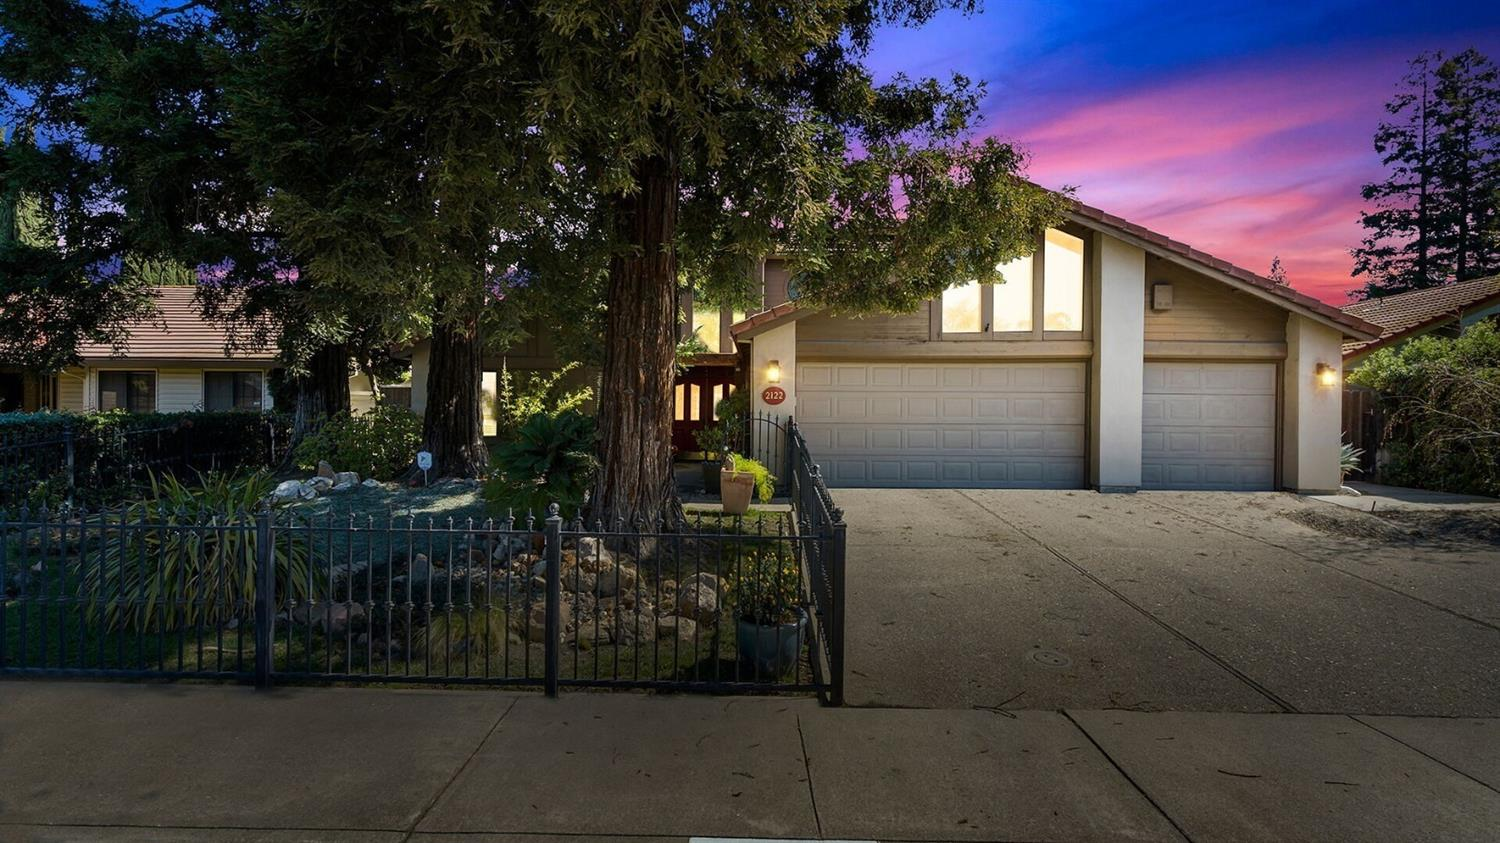 Photo of 2122 Piccardo Circle, Stockton, CA 95207